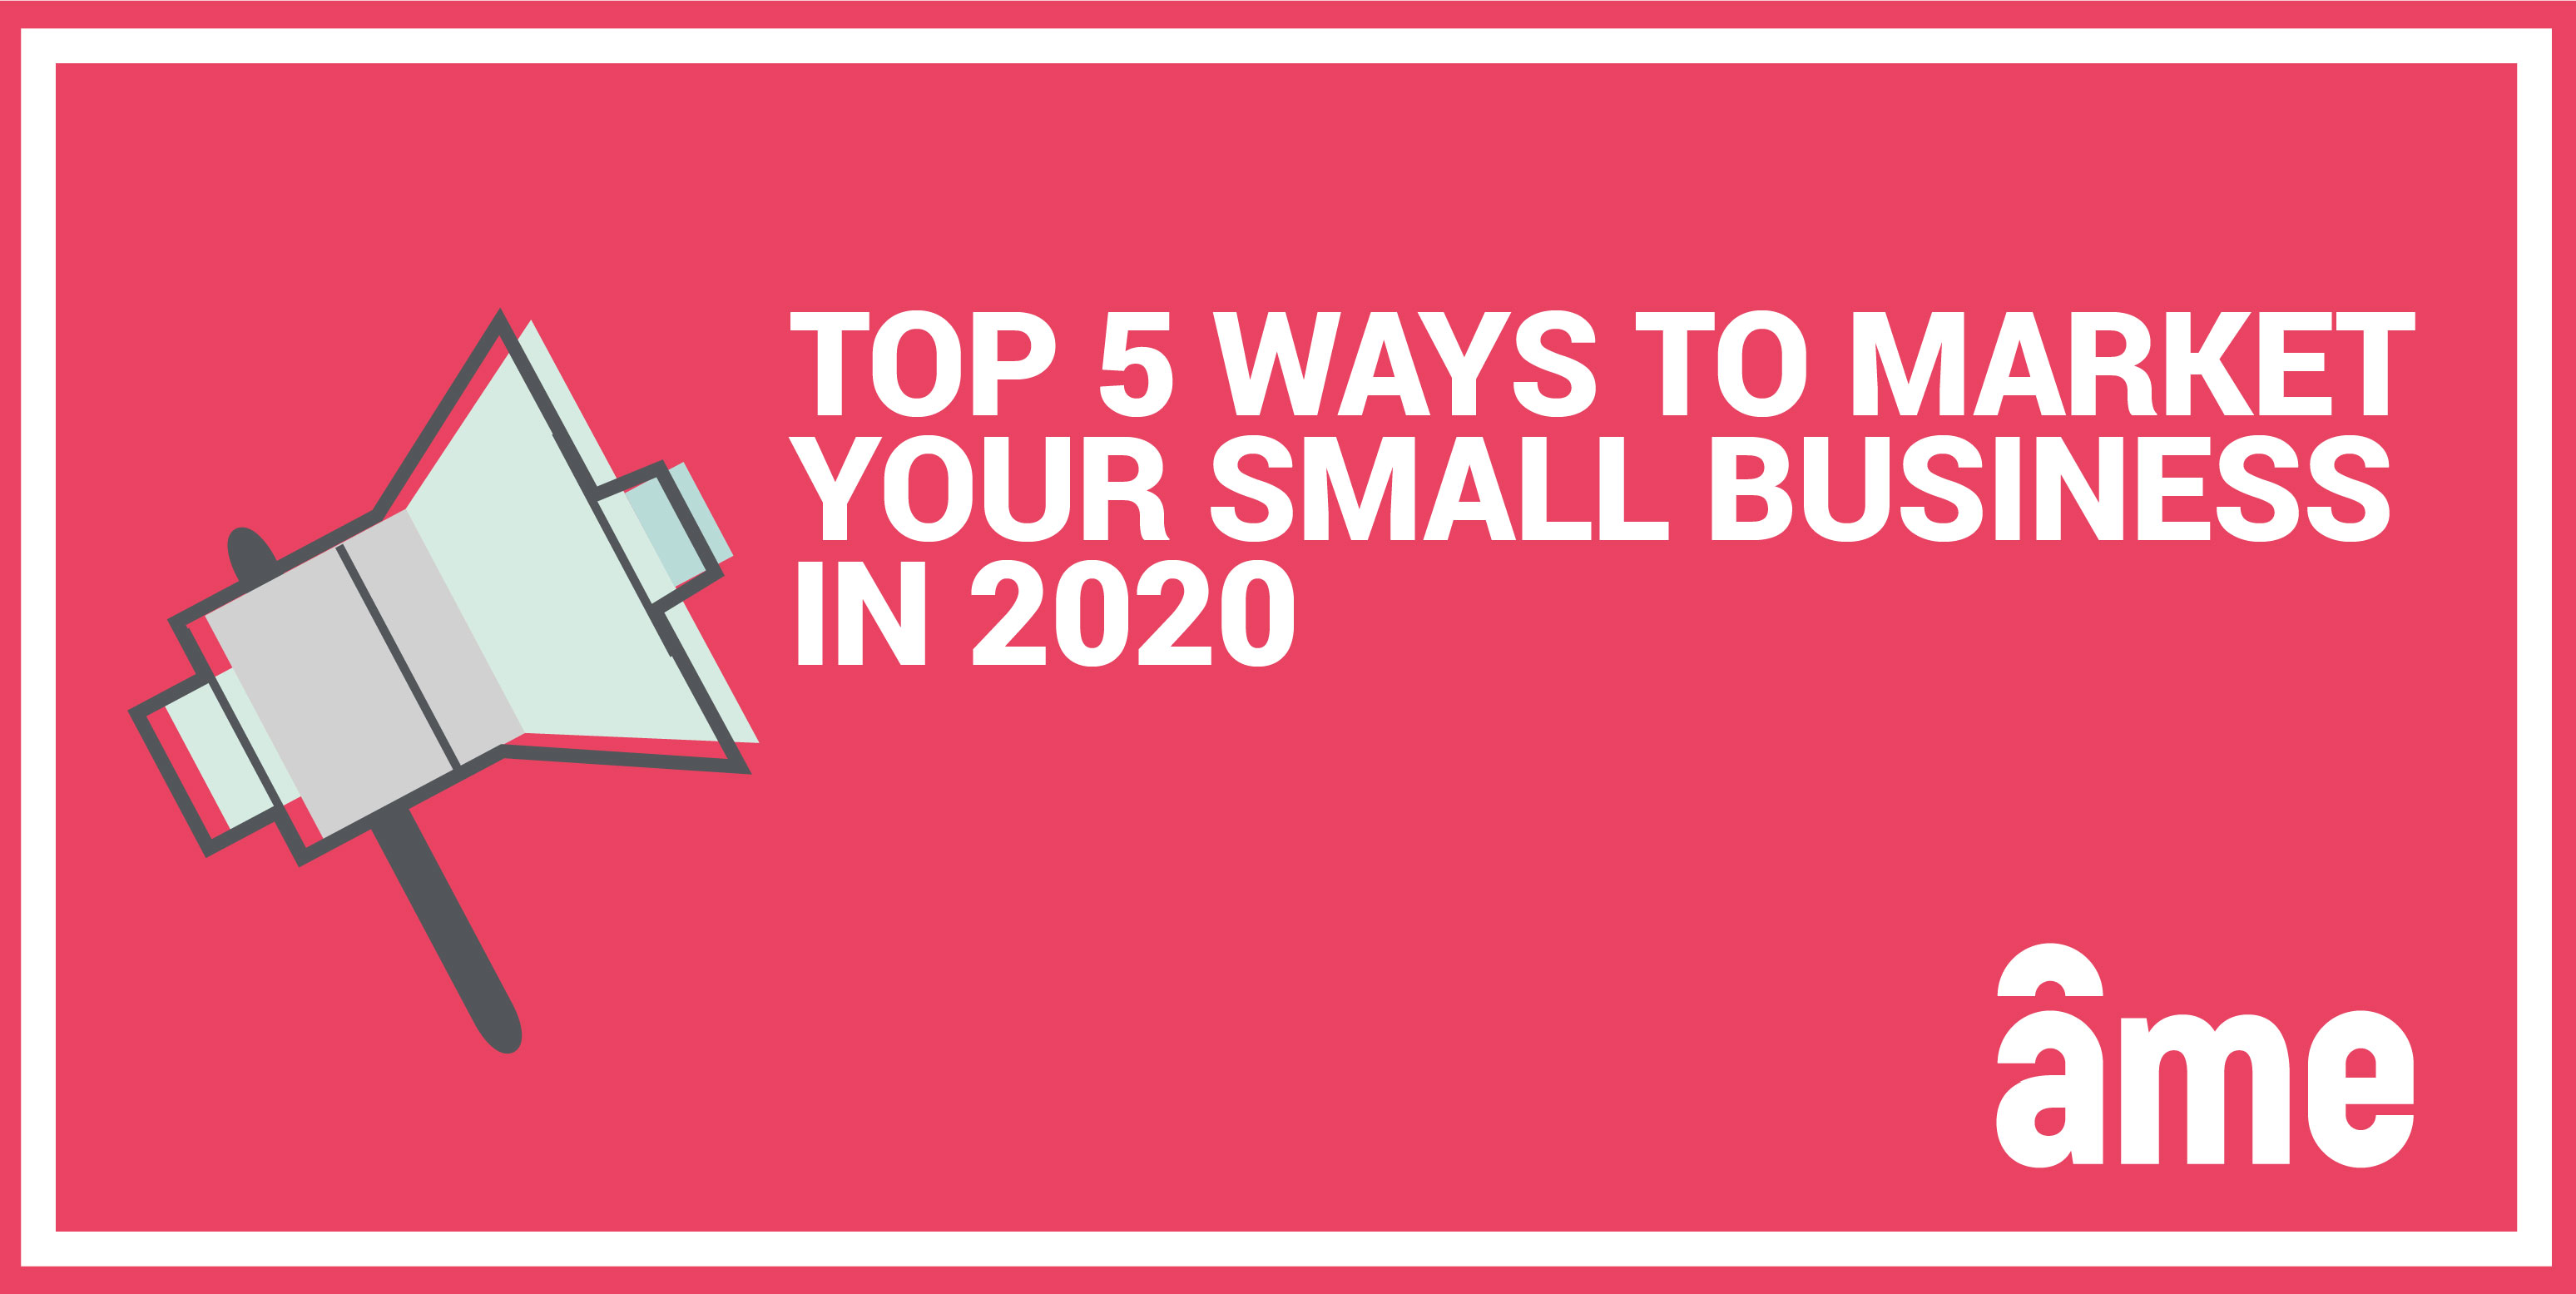 top 5 ways to market your small business in 2020